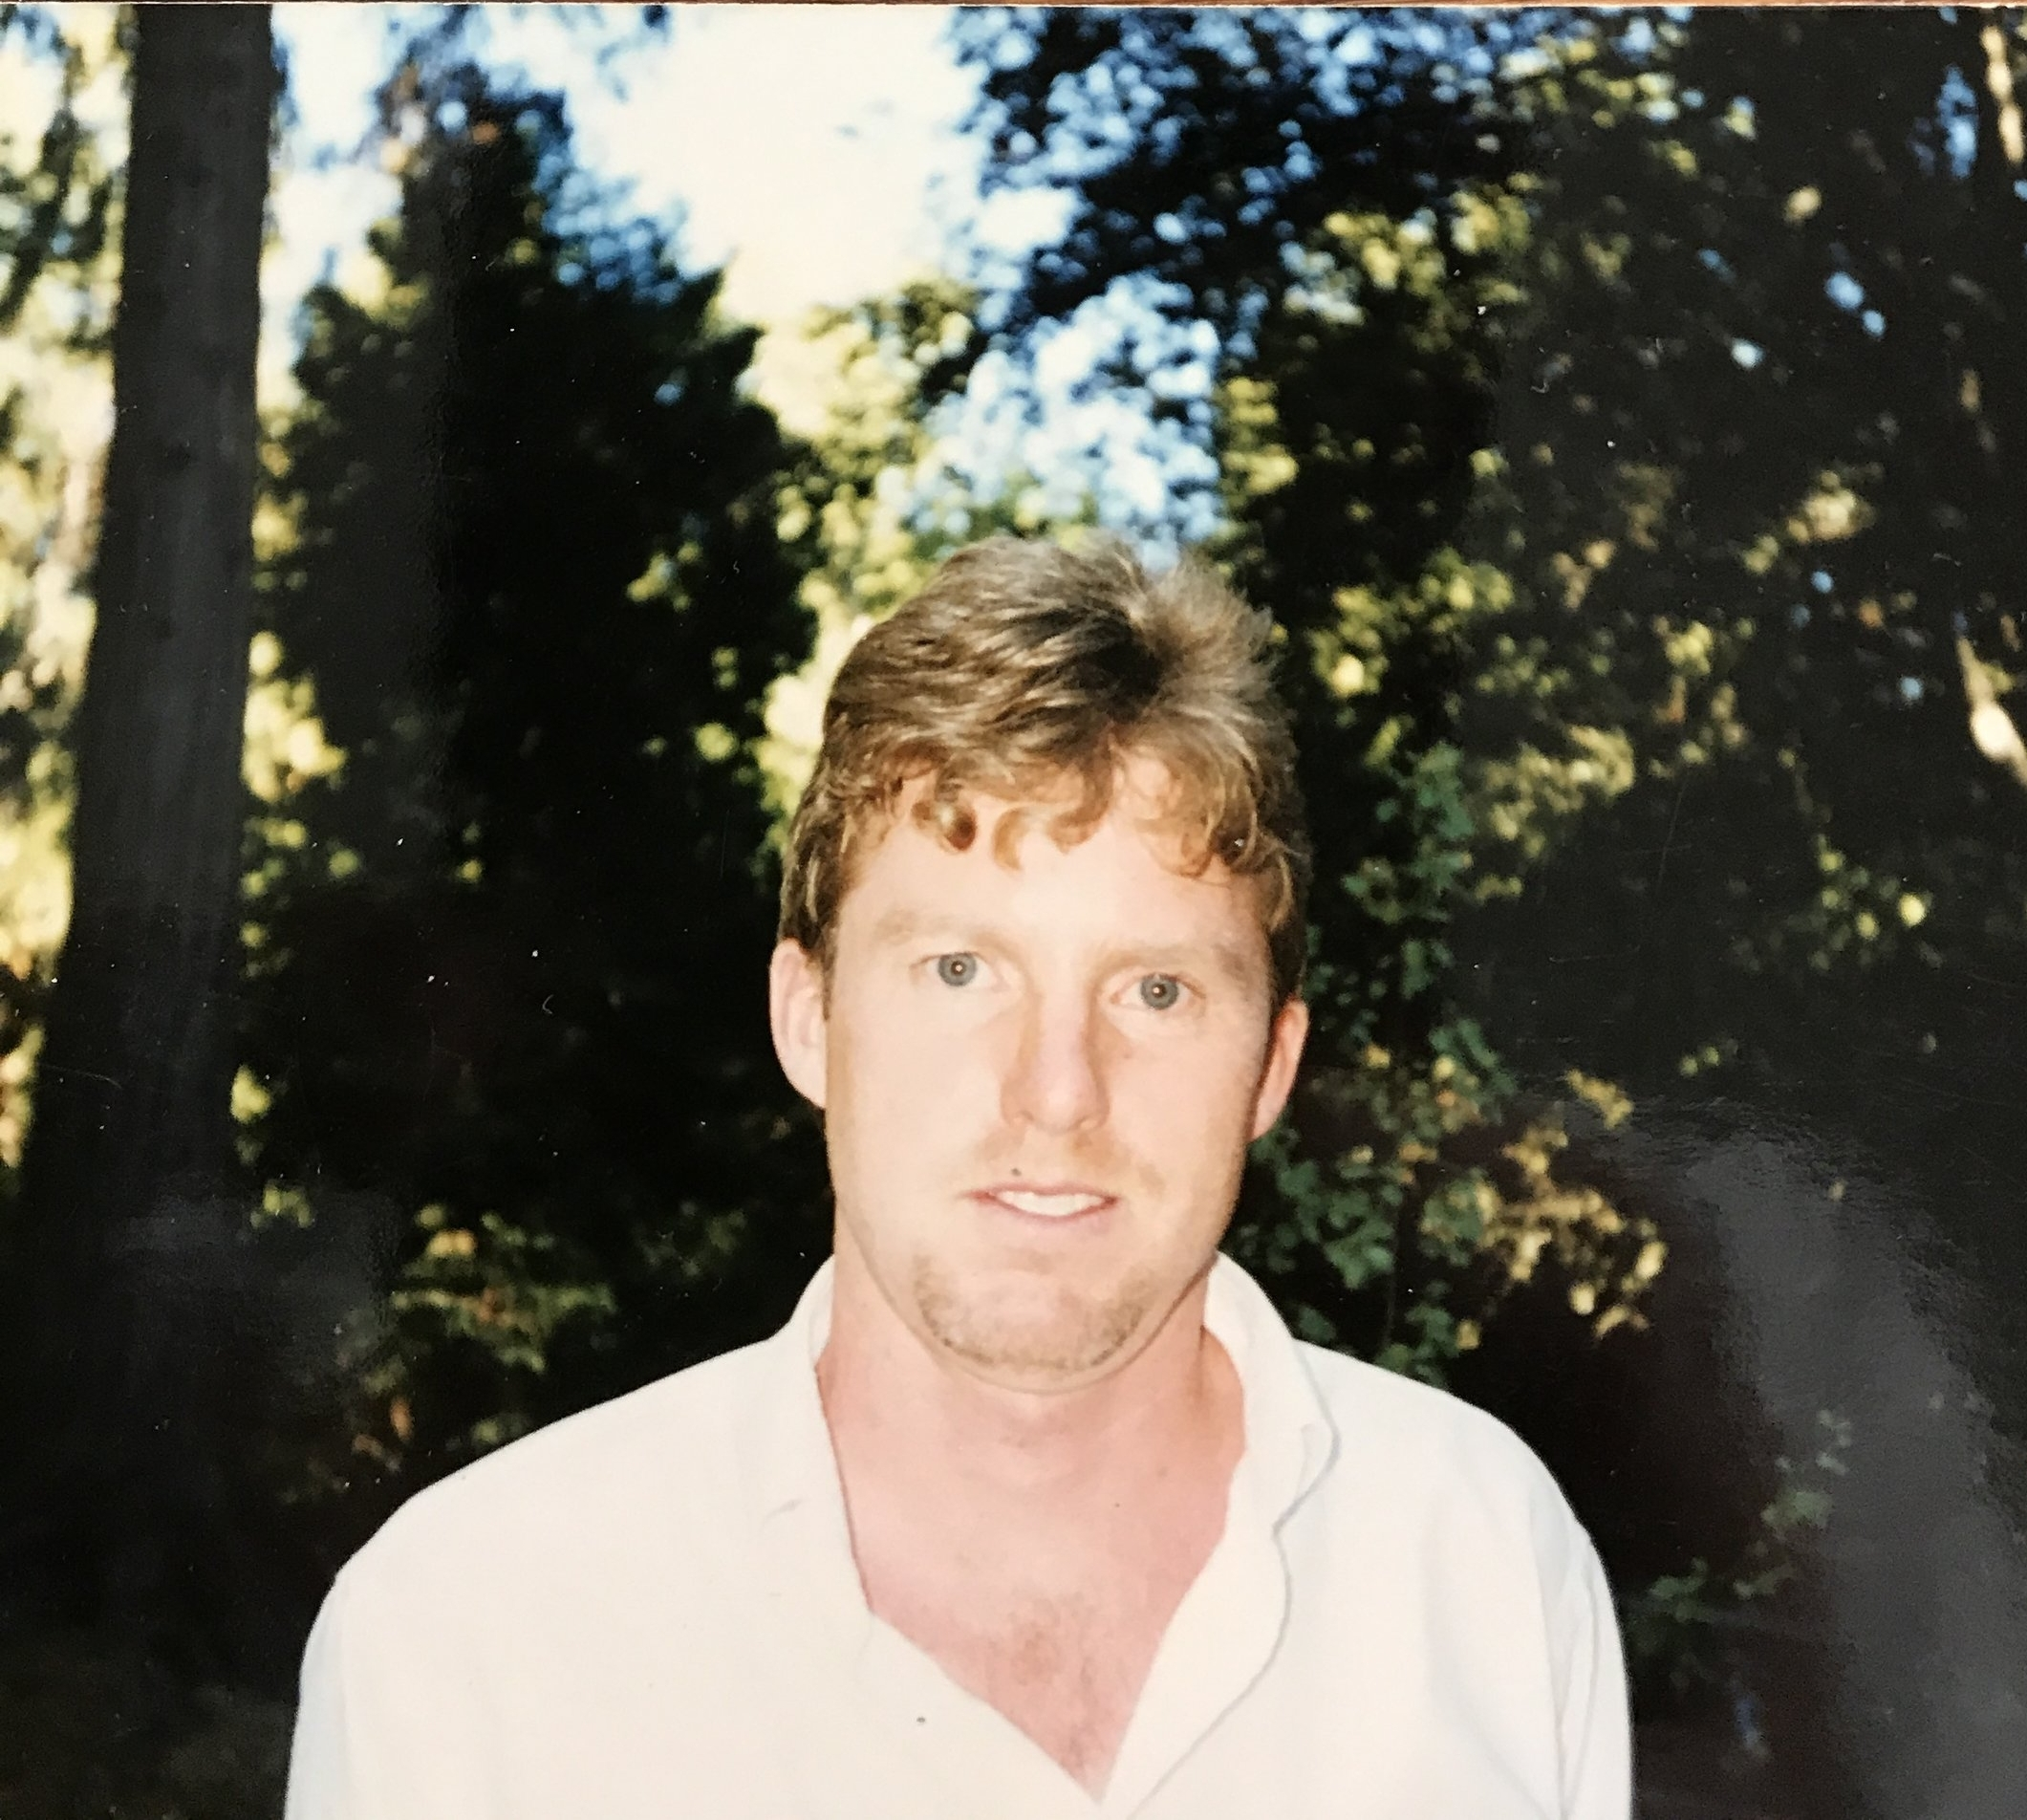 Me in 1996, just after I started my company.